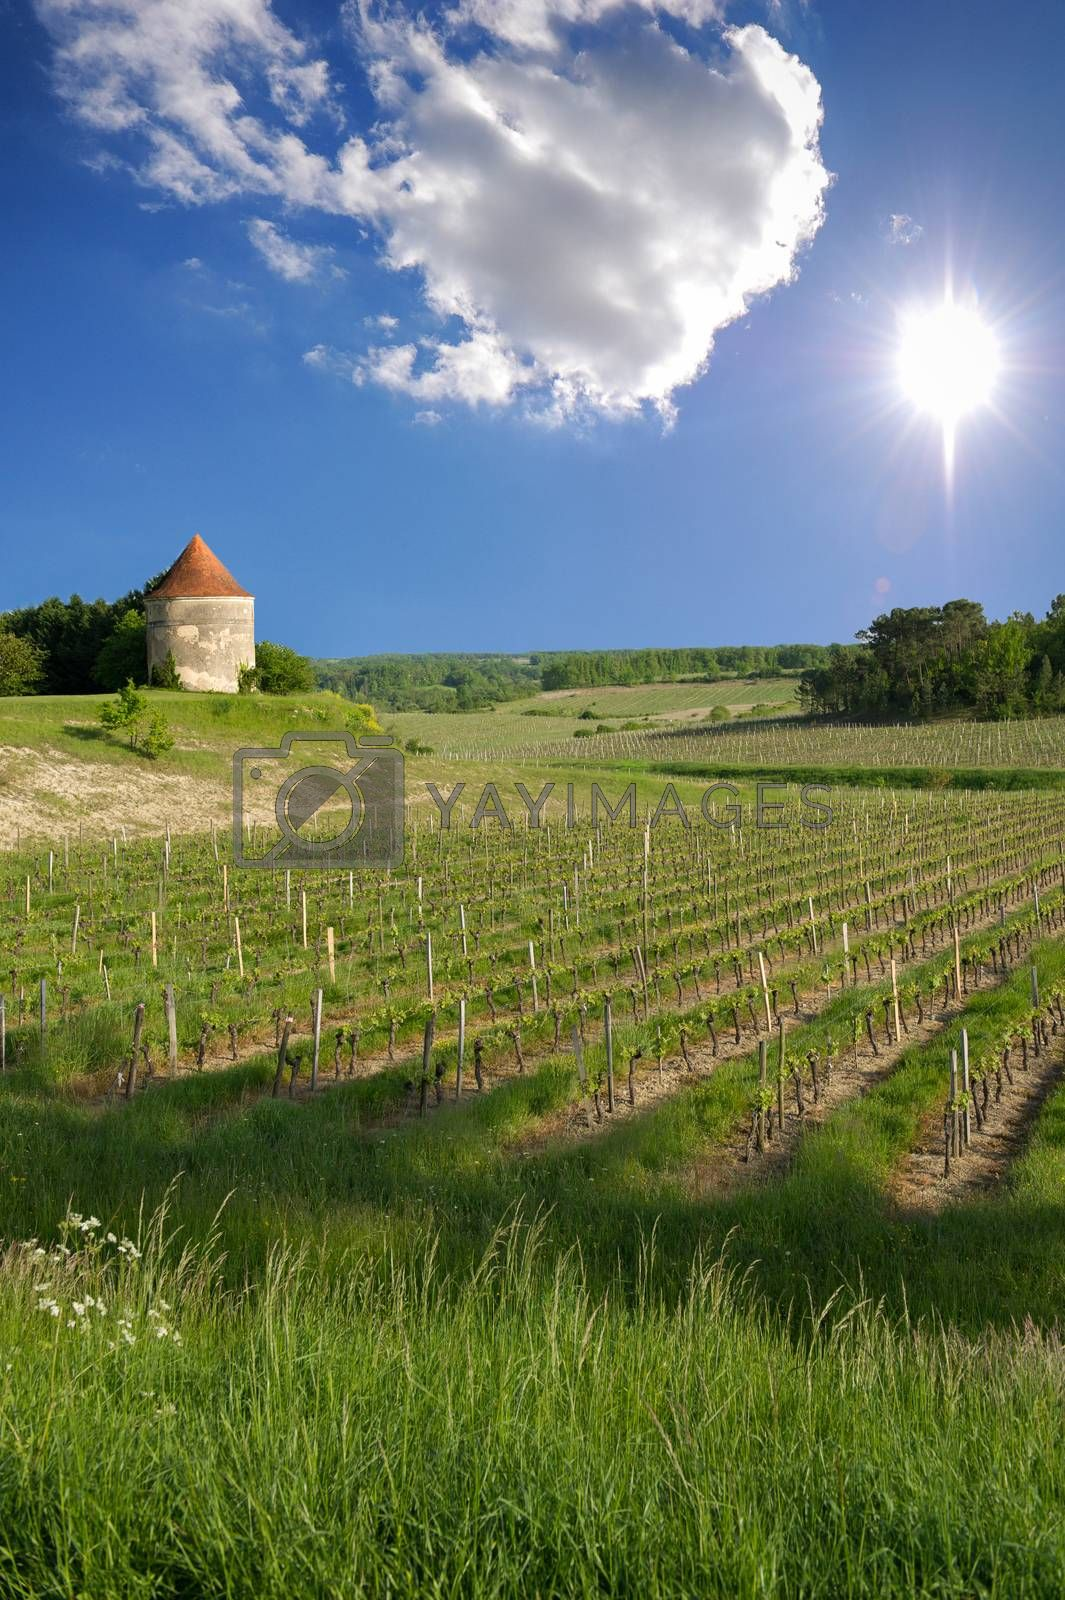 Vineyards of Saint Emilion, Bordeaux Vineyards by FreeProd